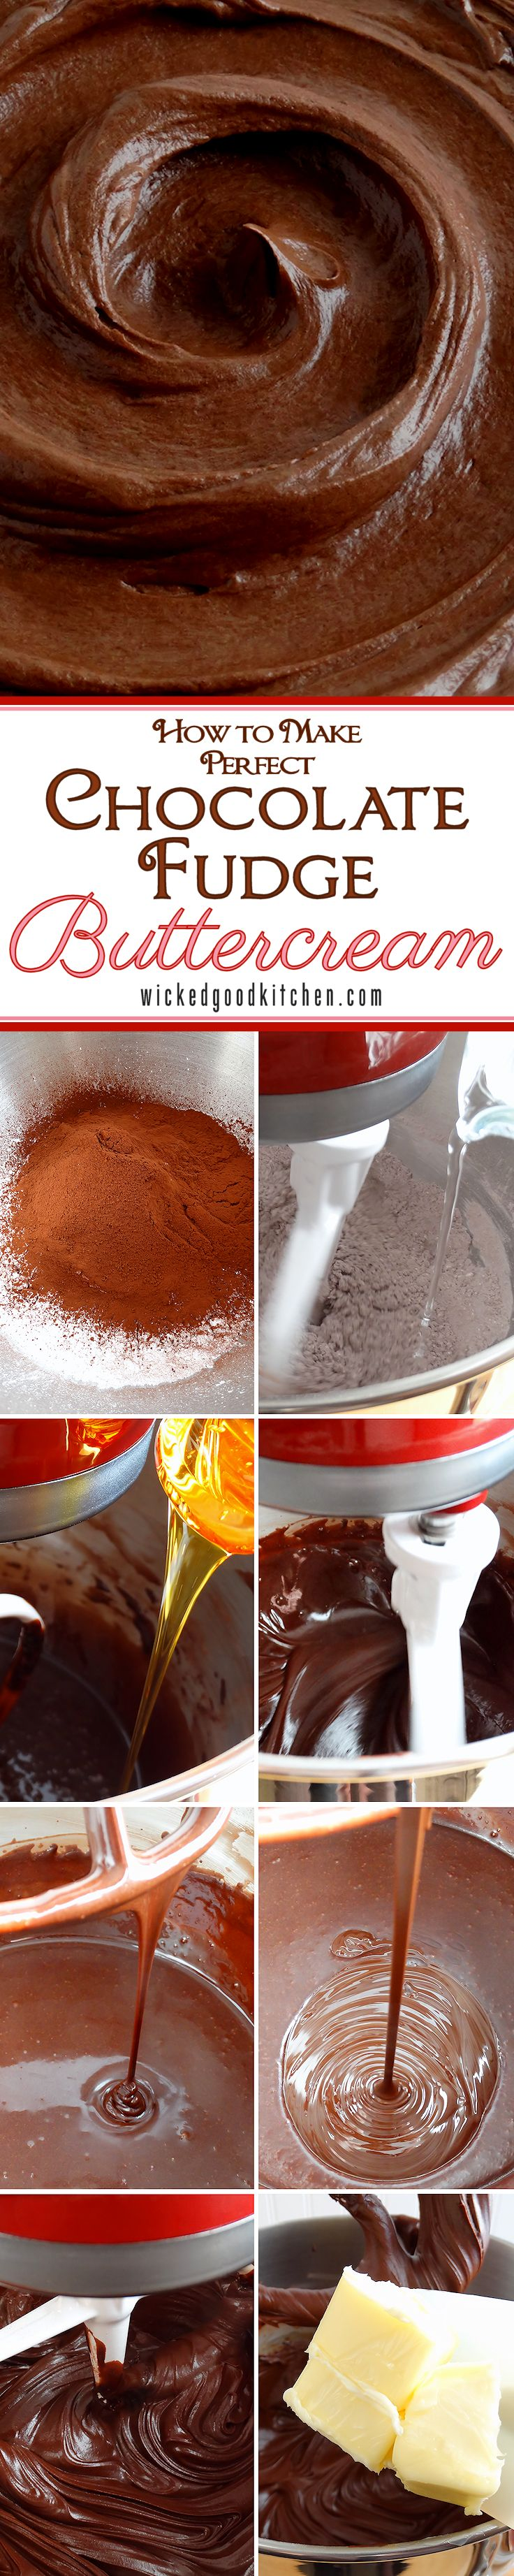 Chocolate Fudge Silk Buttercream ~ Everything you need to know about making the perfect buttercream frosting (made with both cocoa and chocolate). Tutorial includes secret ingredients, a unique method, tips for handling and step-by-step directions and photos. This impressive recipe whips up in just 30 minutes!   diy dessert recipe